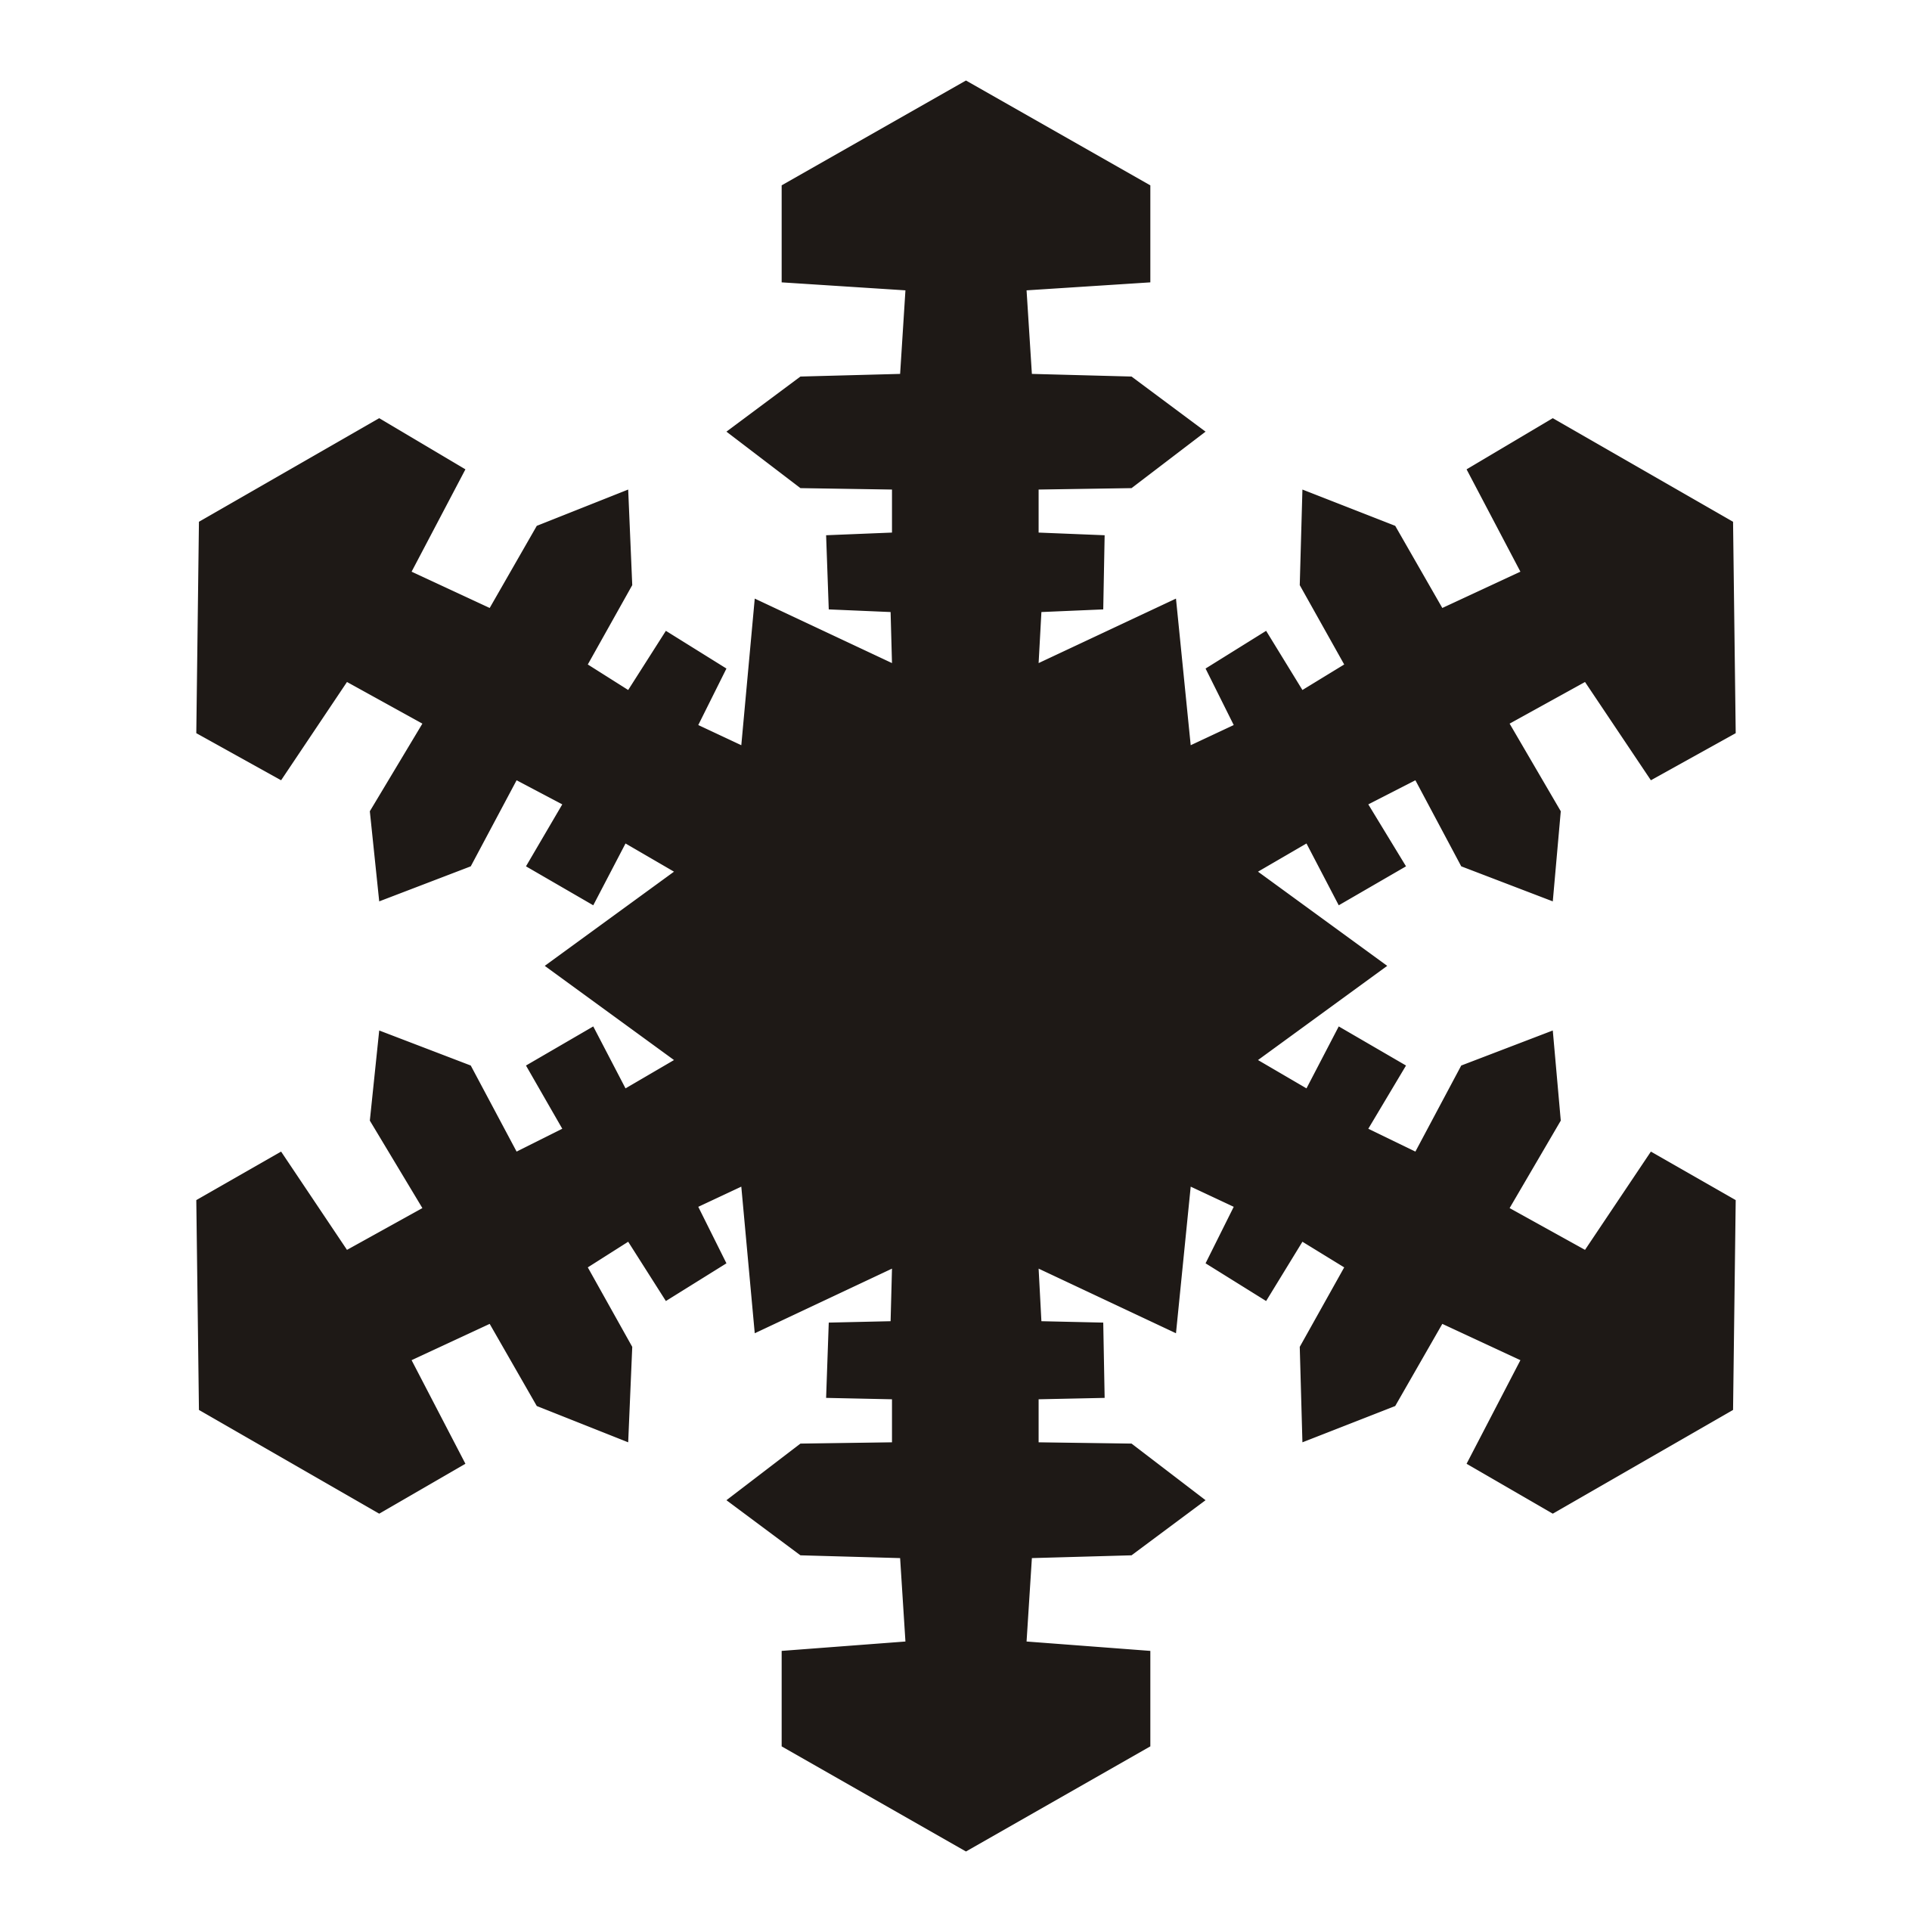 19 Snowflakes clipart HUGE FREEBIE! Download for PowerPoint ... clip art transparent